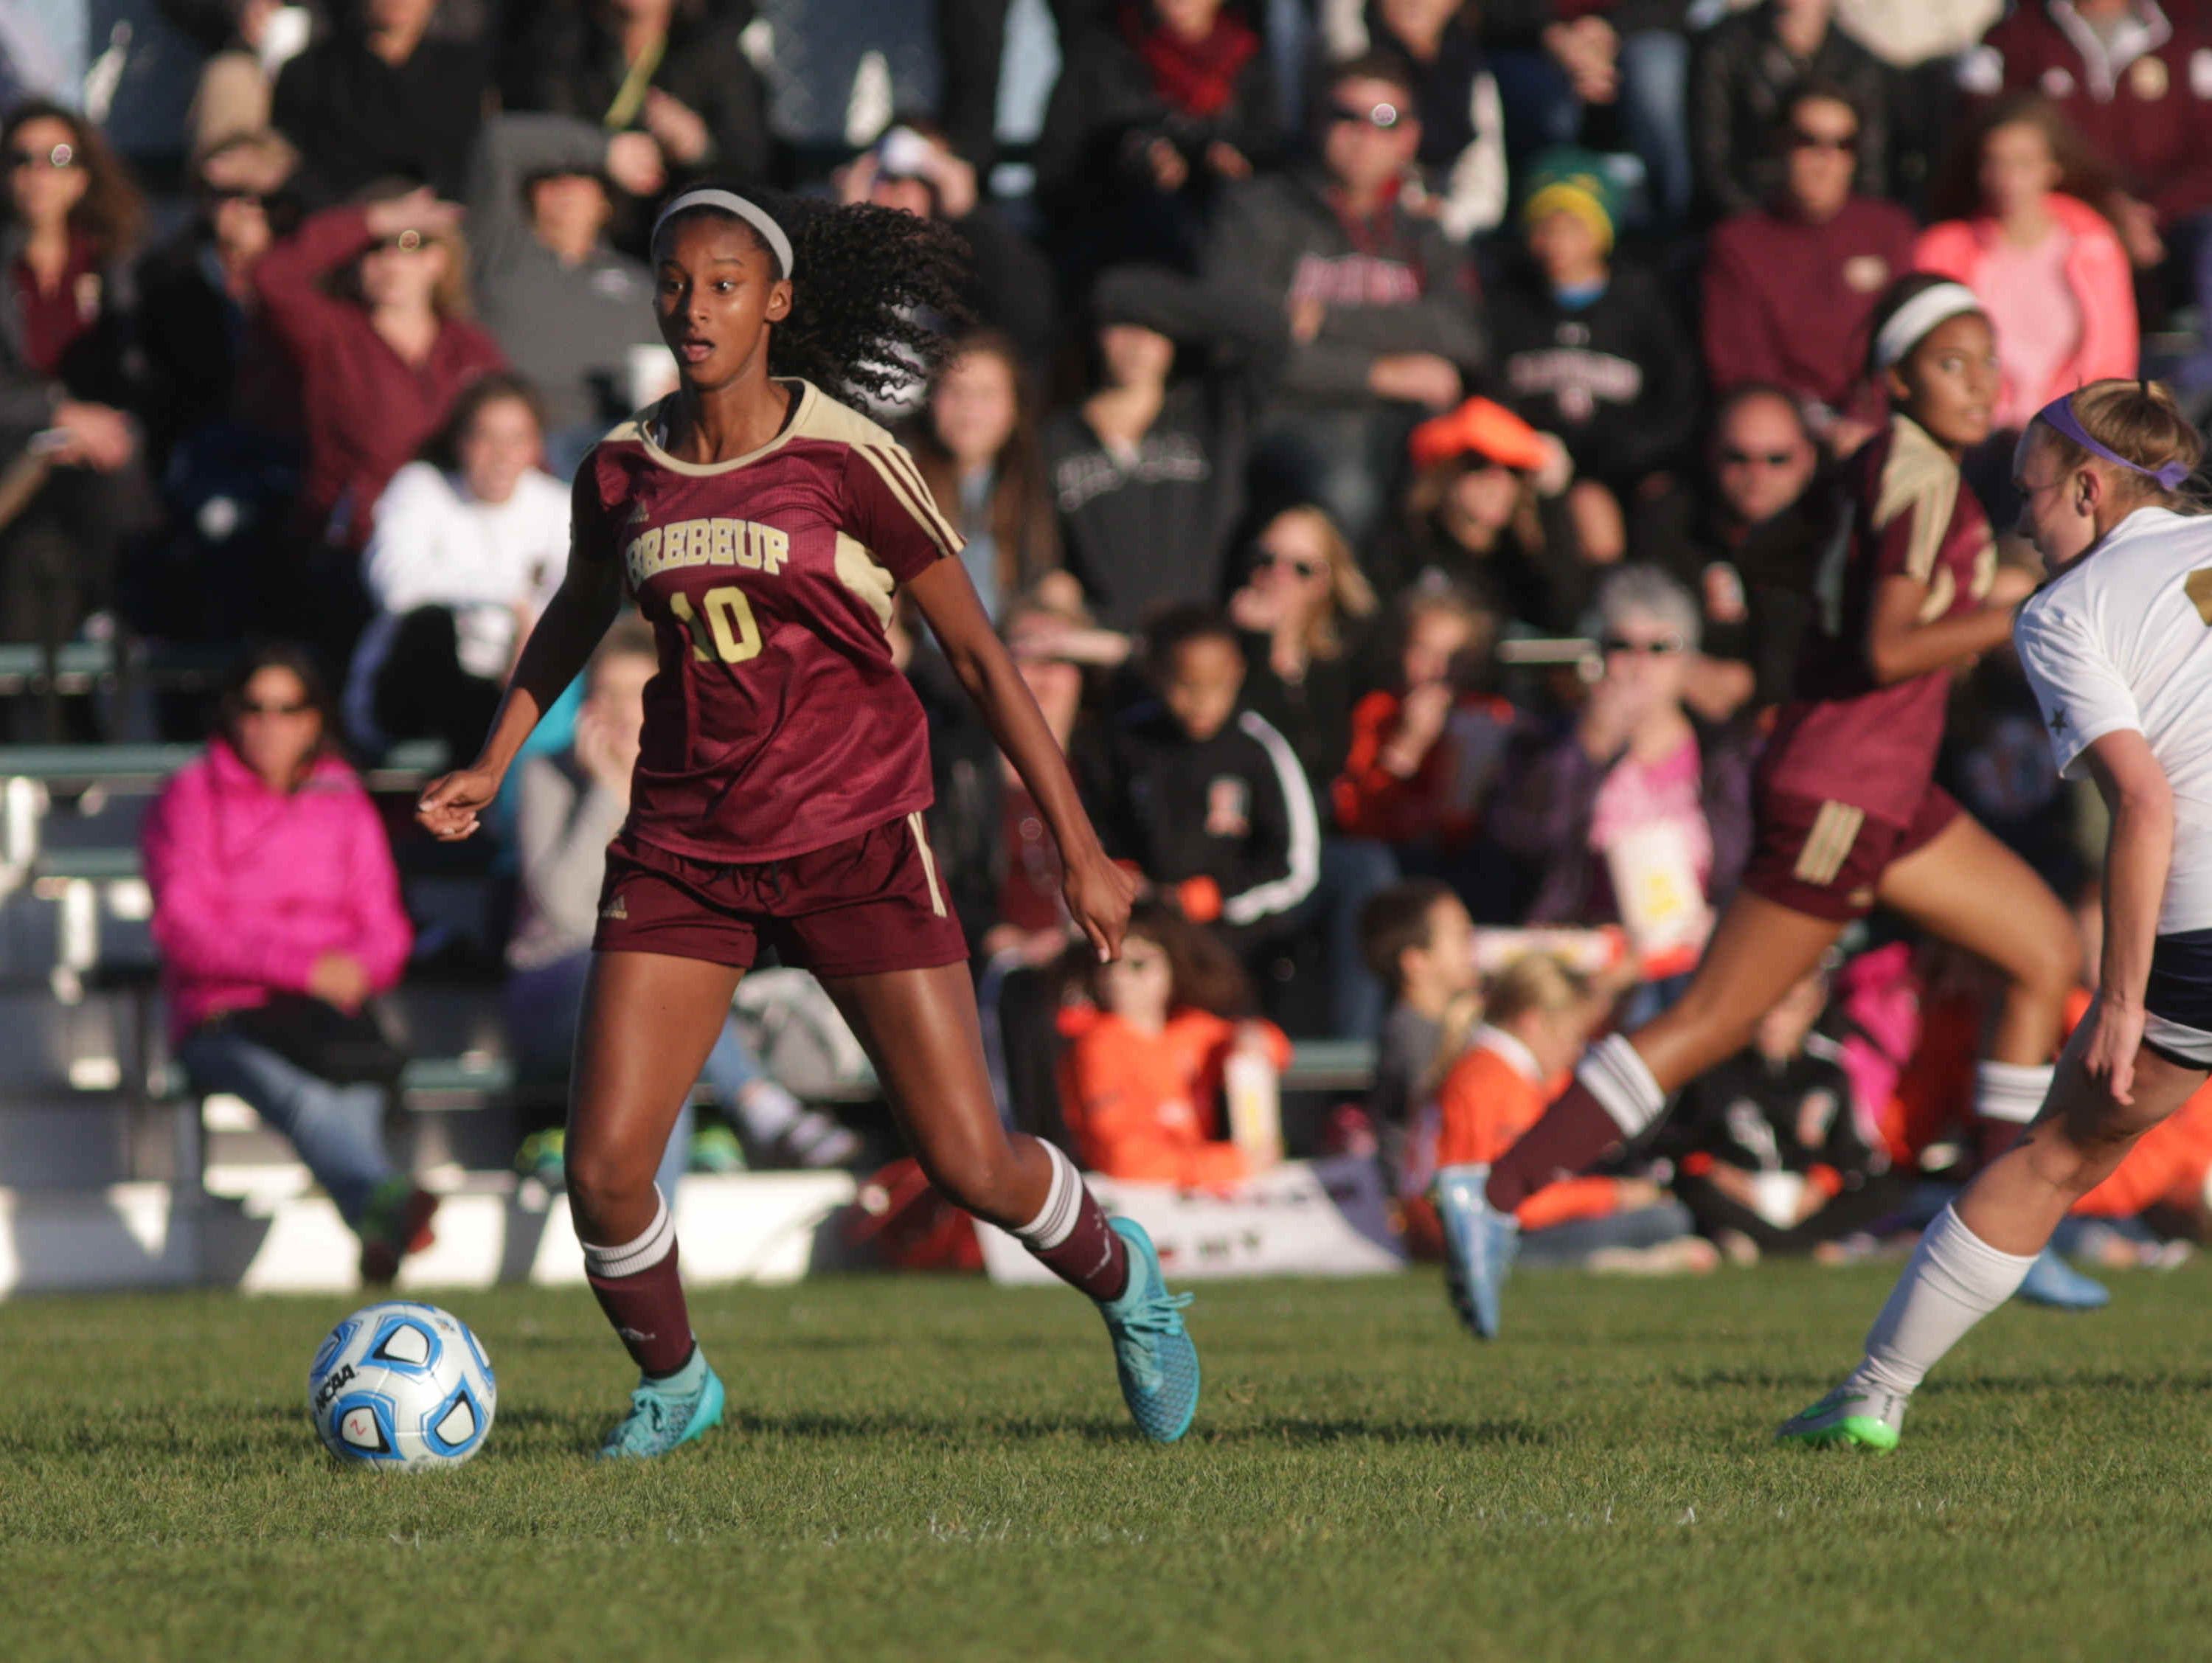 Brebeuf's Ryanne Brown.